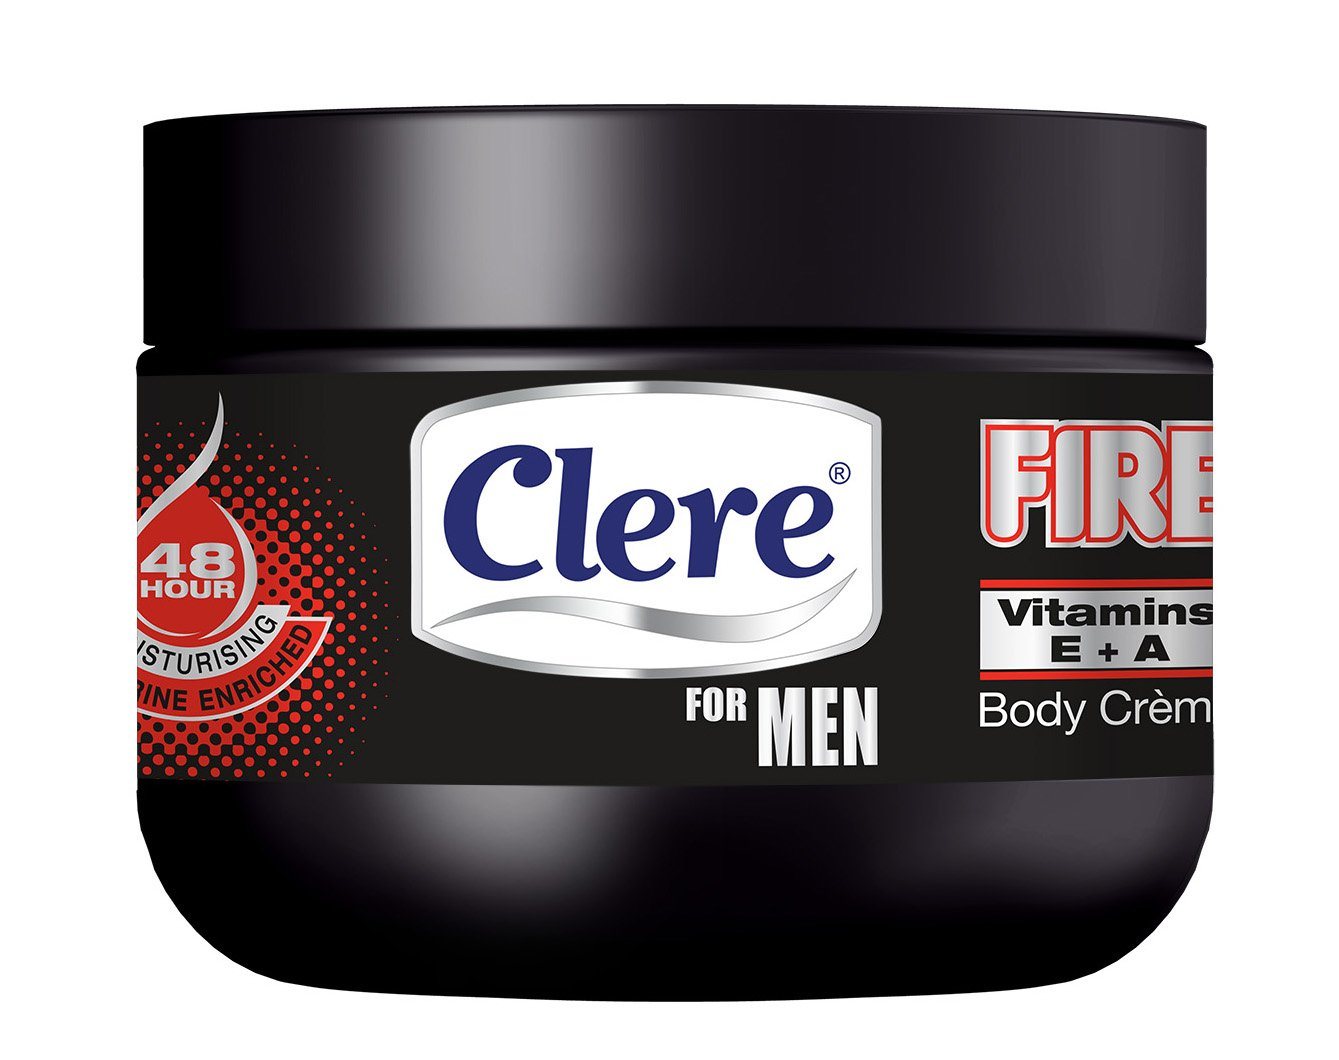 Clere For Men Body Crème - FIRE - 250ml